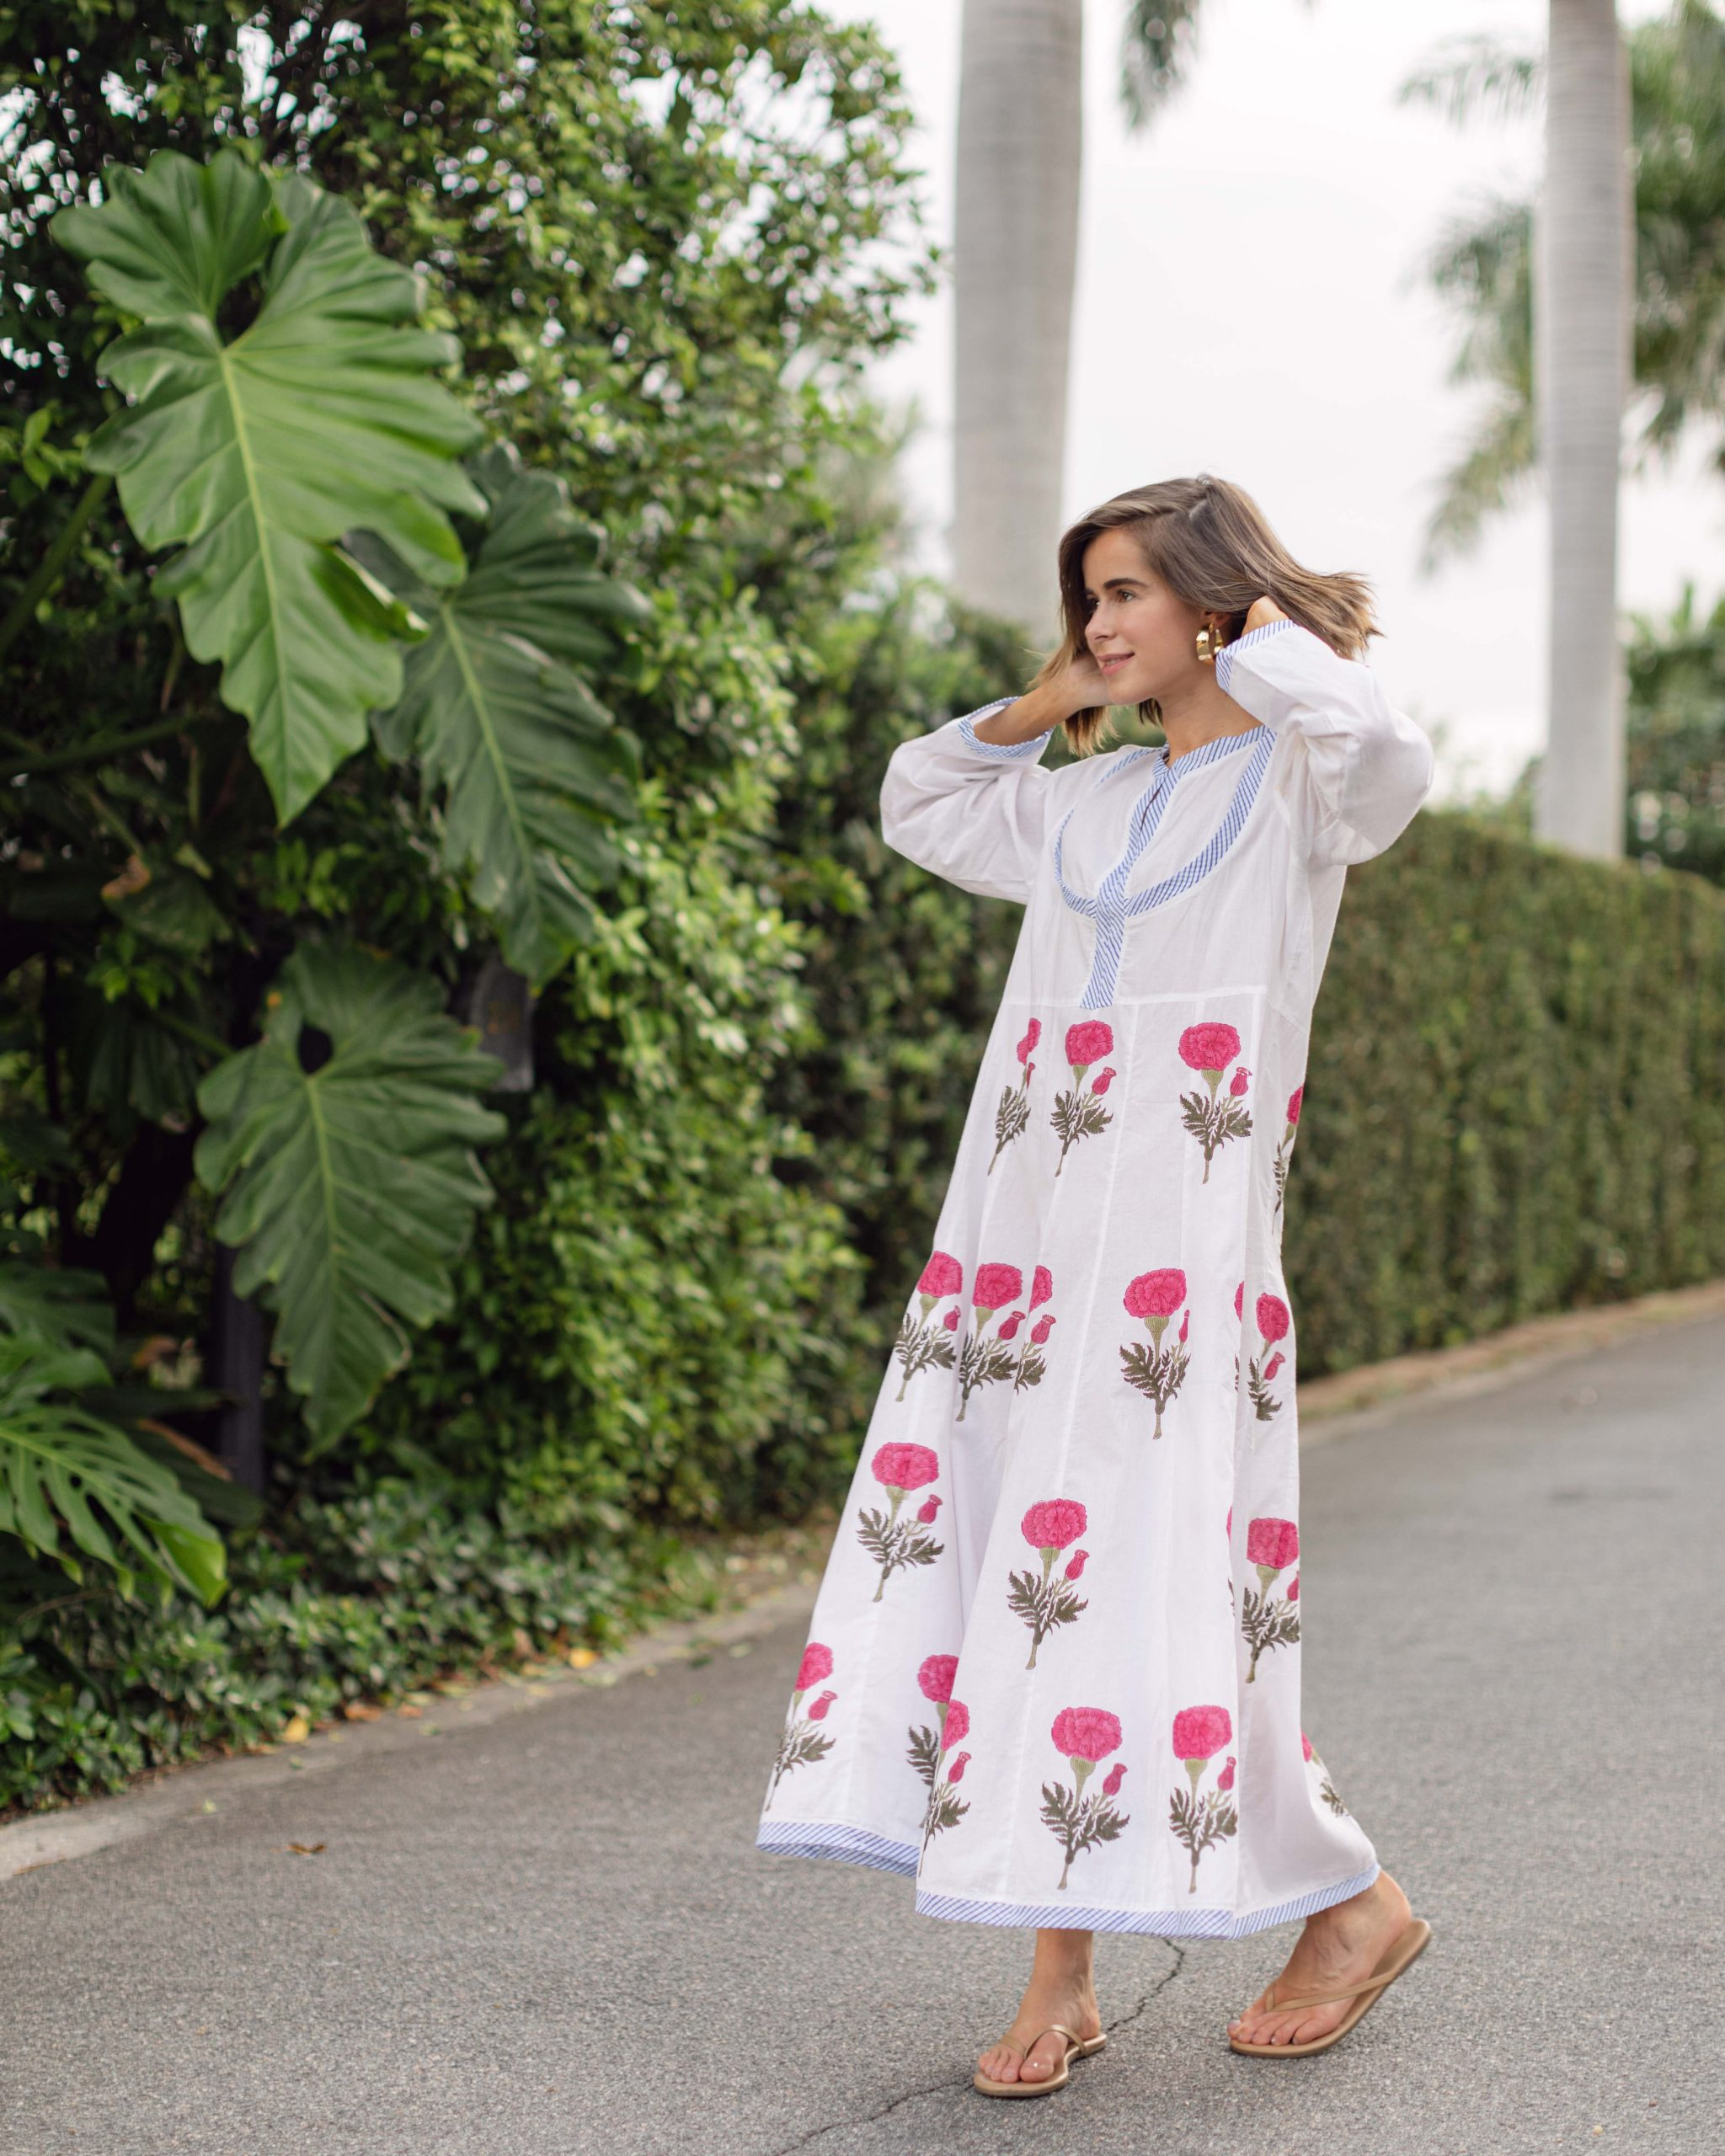 Fashion Blogger Stephanie Hill wears #ootd featuring Tallulah Rose Kaftan on The Style Bungalow